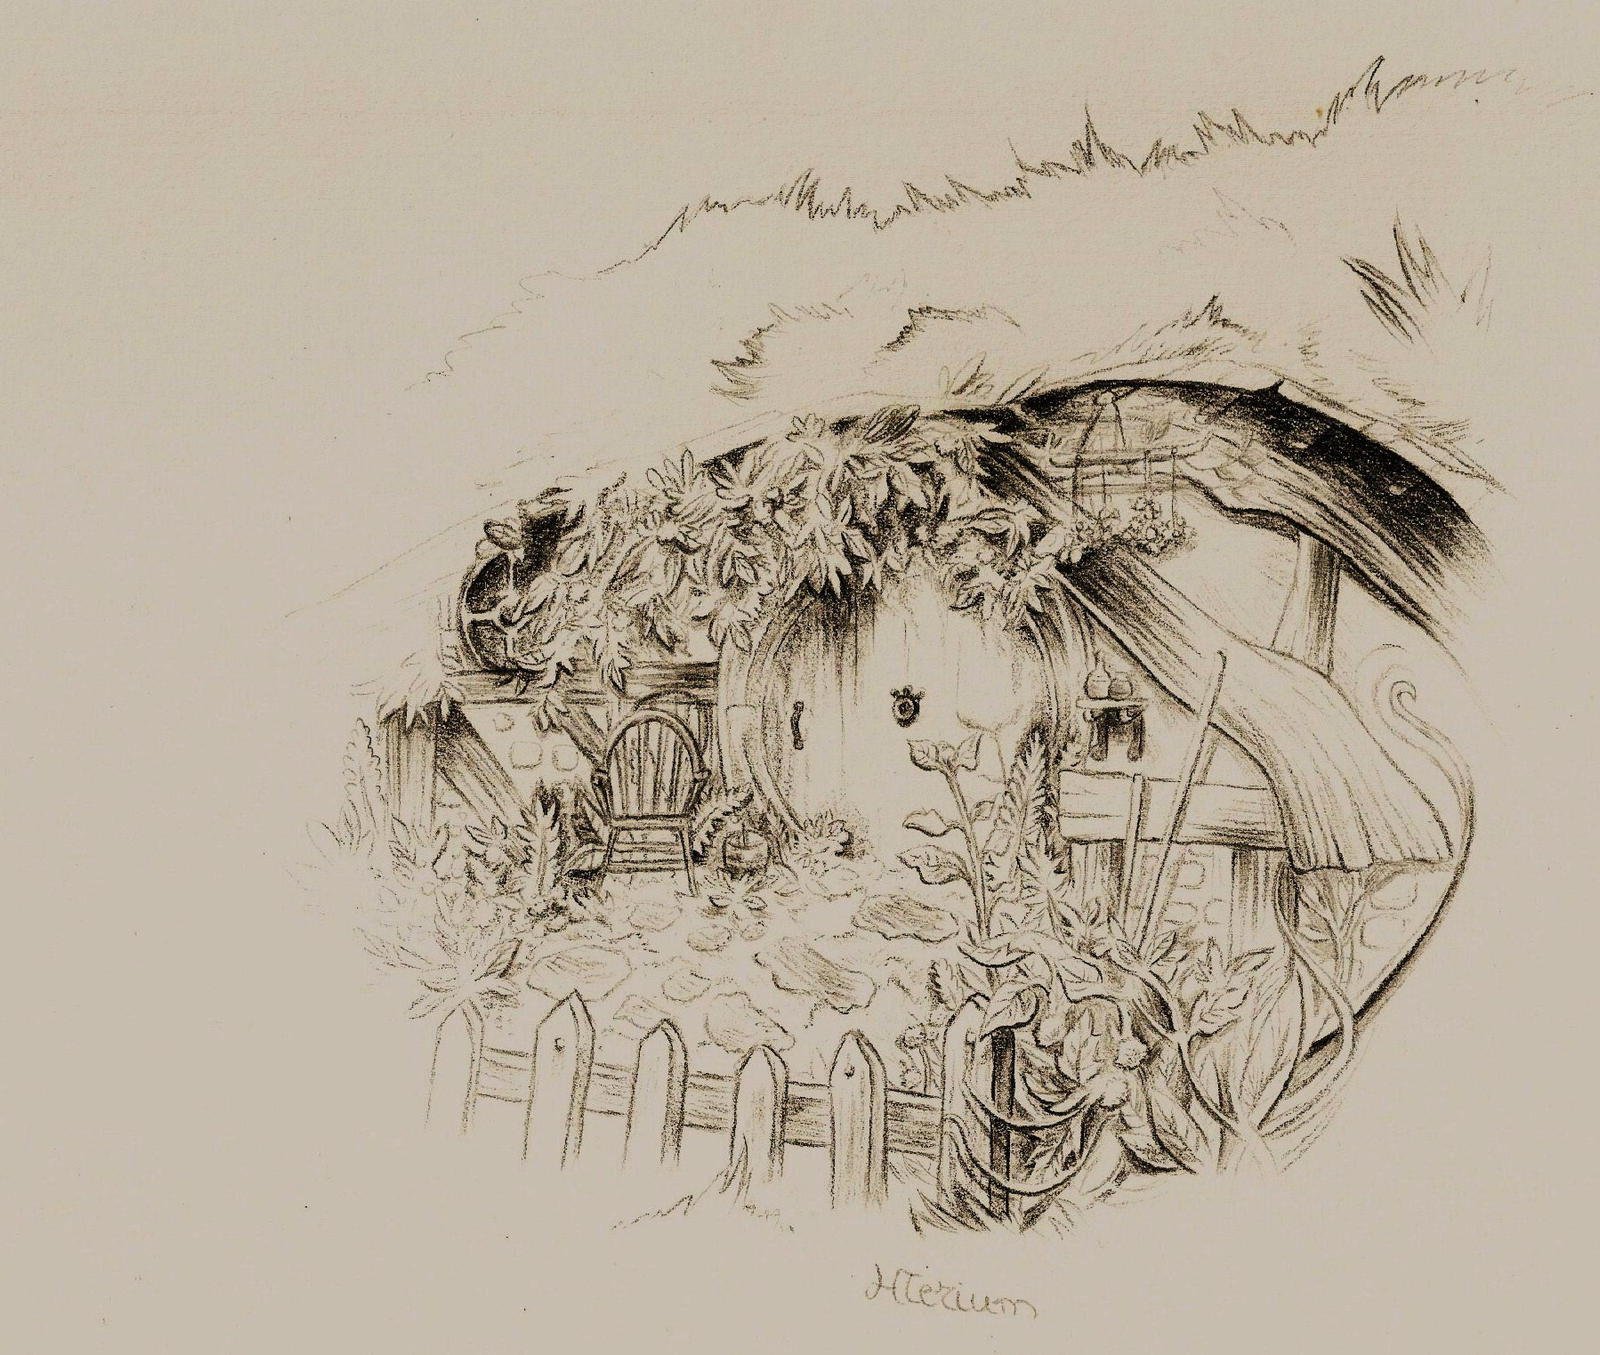 A hobbit house by myrhis on deviantart for Hobbit house drawings